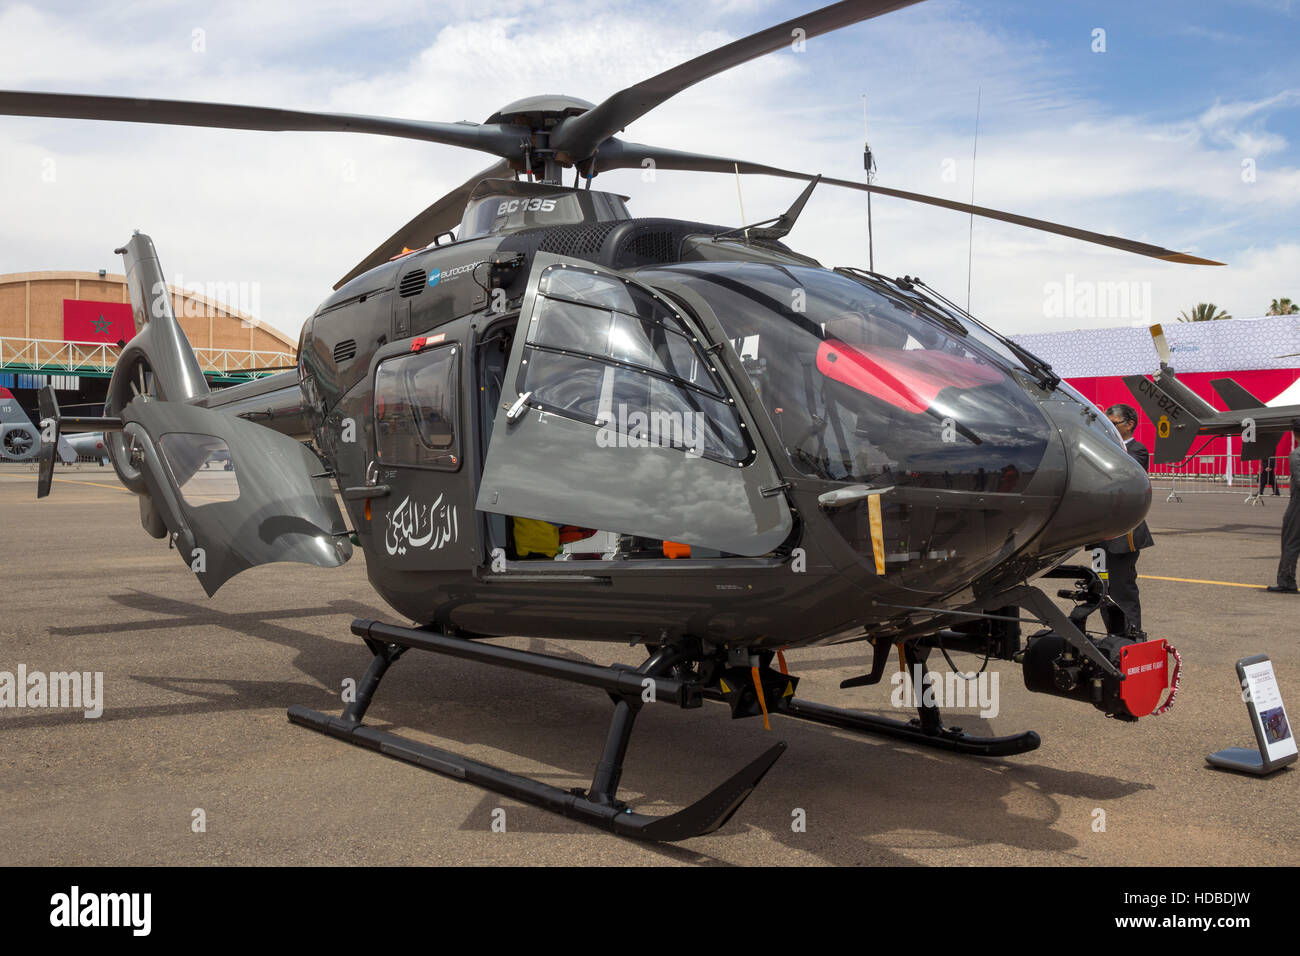 Royal Moroccan Gendarmerie Eurocopter EC135T2 helicopter on display at the Marrakesh Air Show 2016 - Stock Image